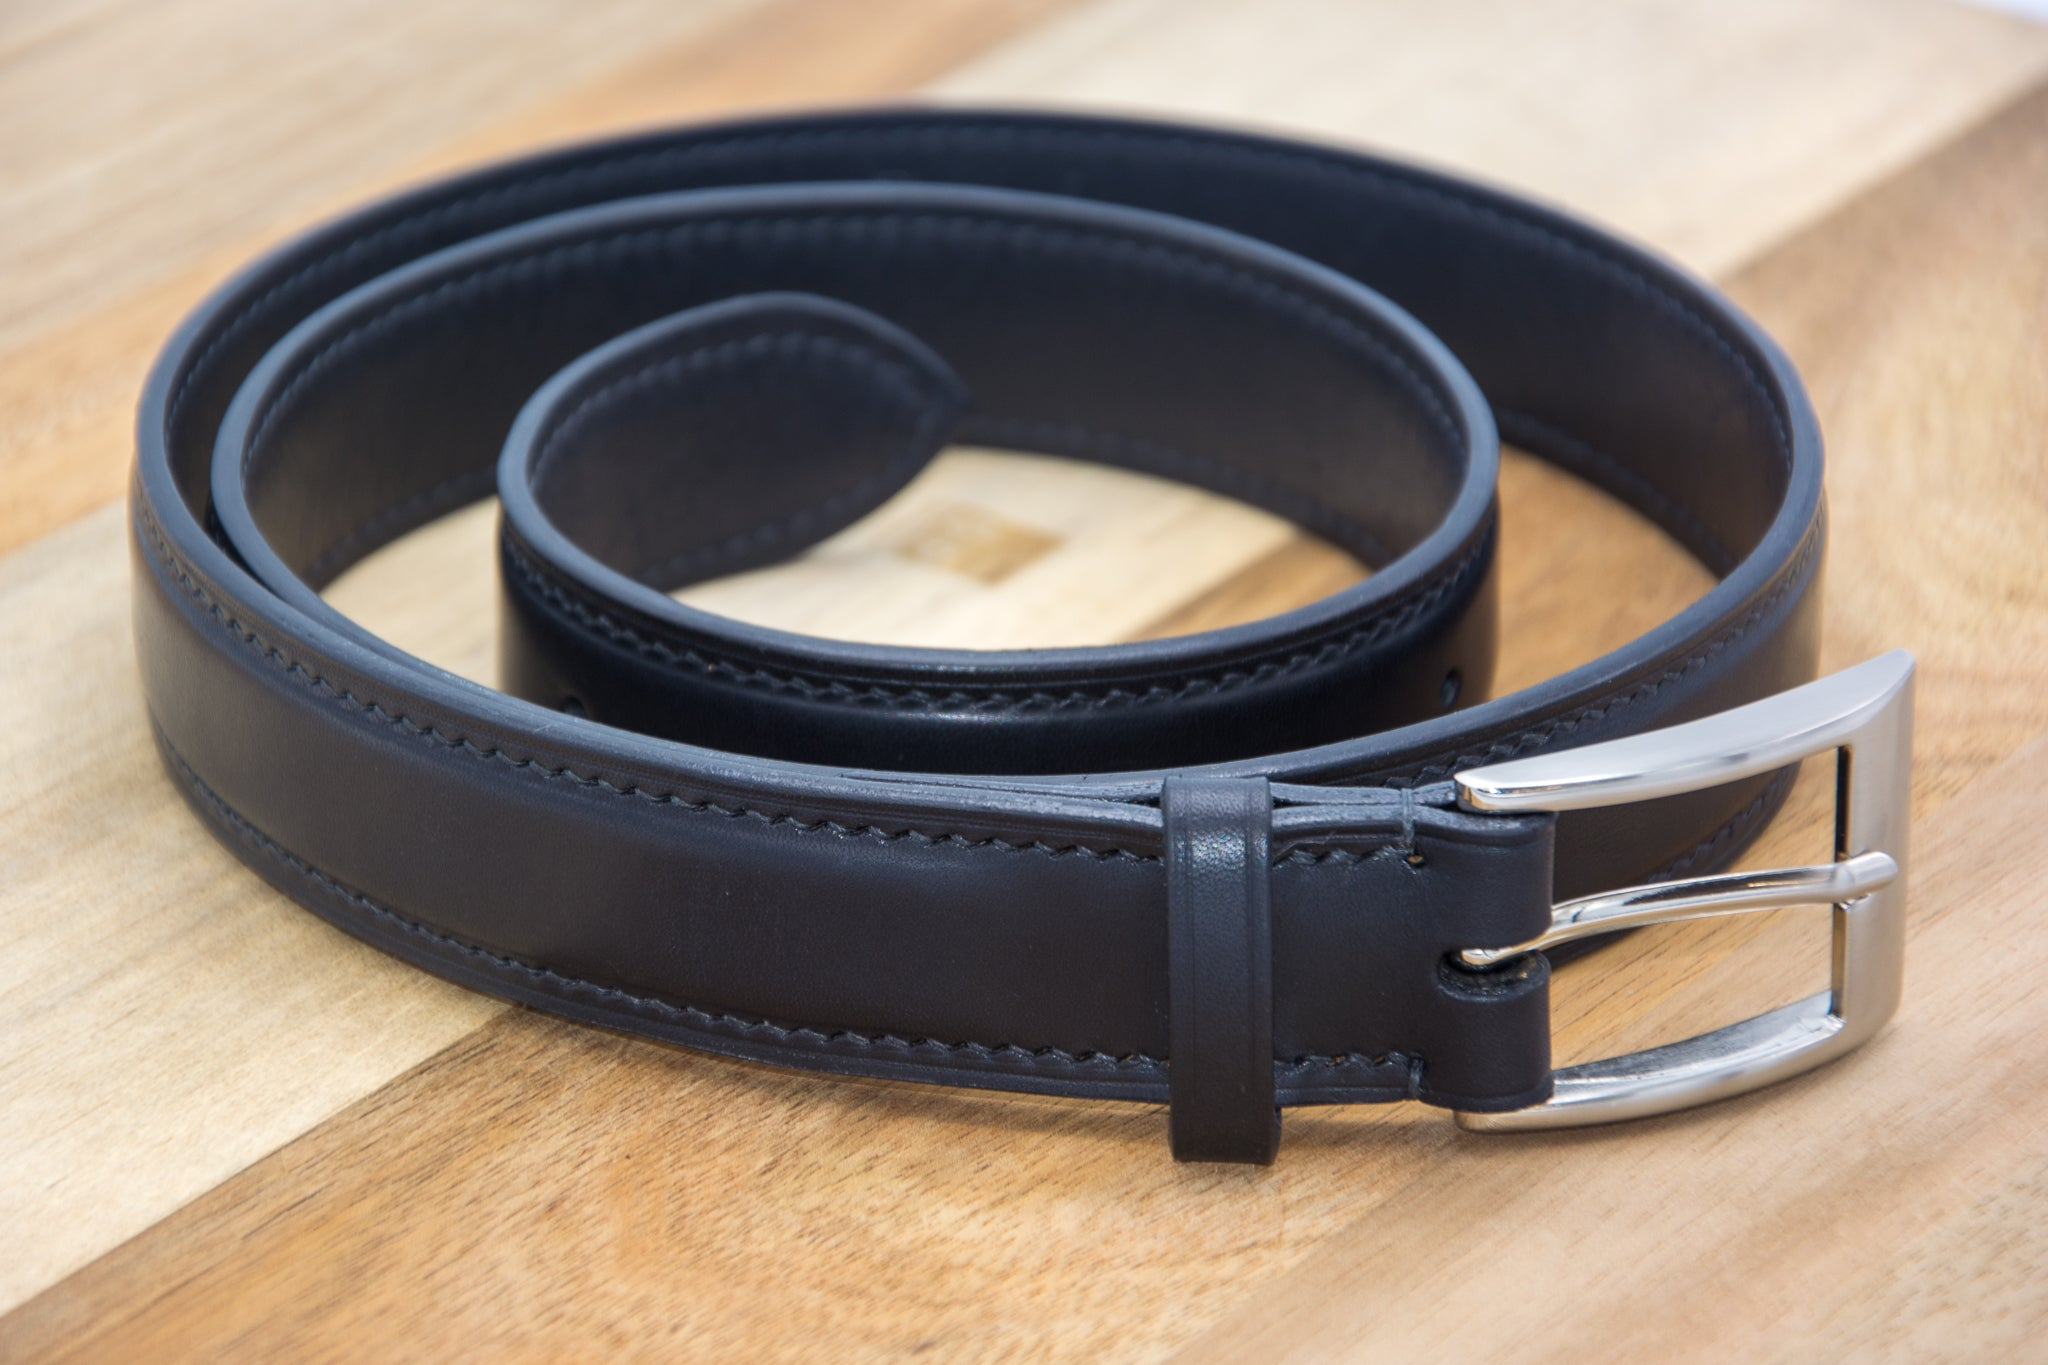 Newsleather Radermecker - Delmotte Leathercraft - Raised belt